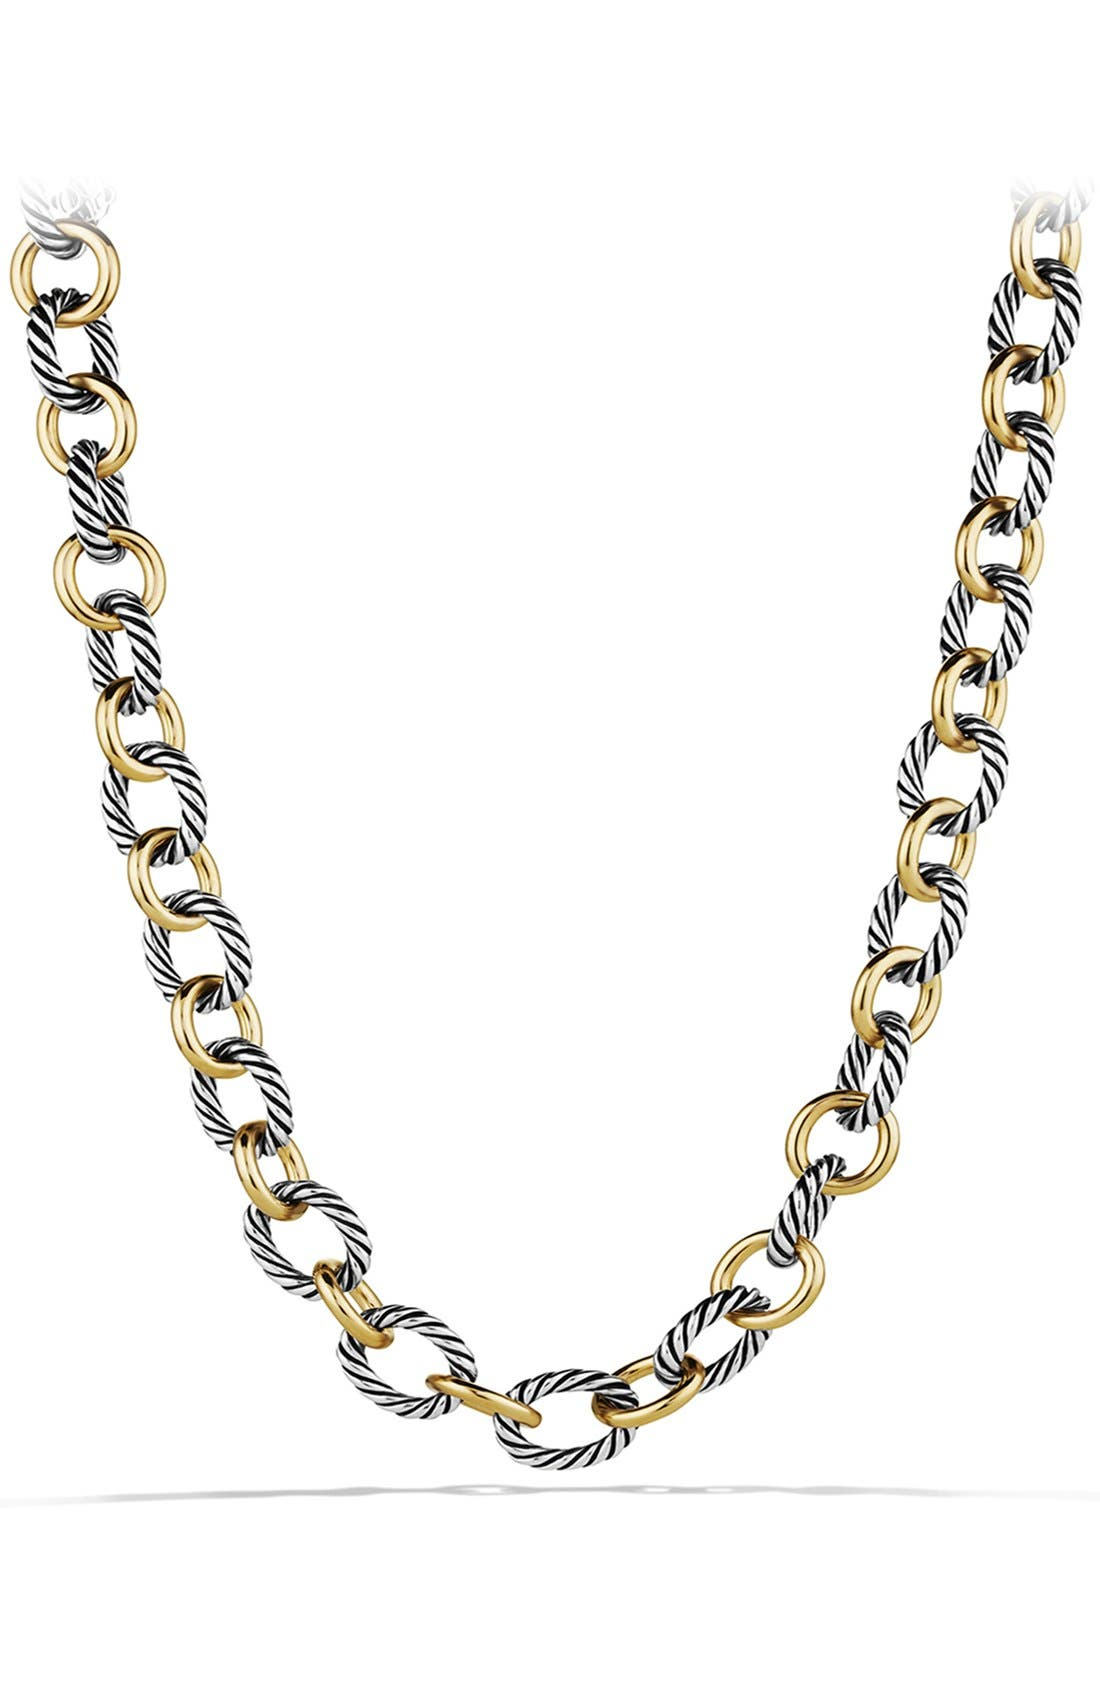 Alternate Image 1 Selected - David Yurman 'Oval' Large Link Necklace with Gold